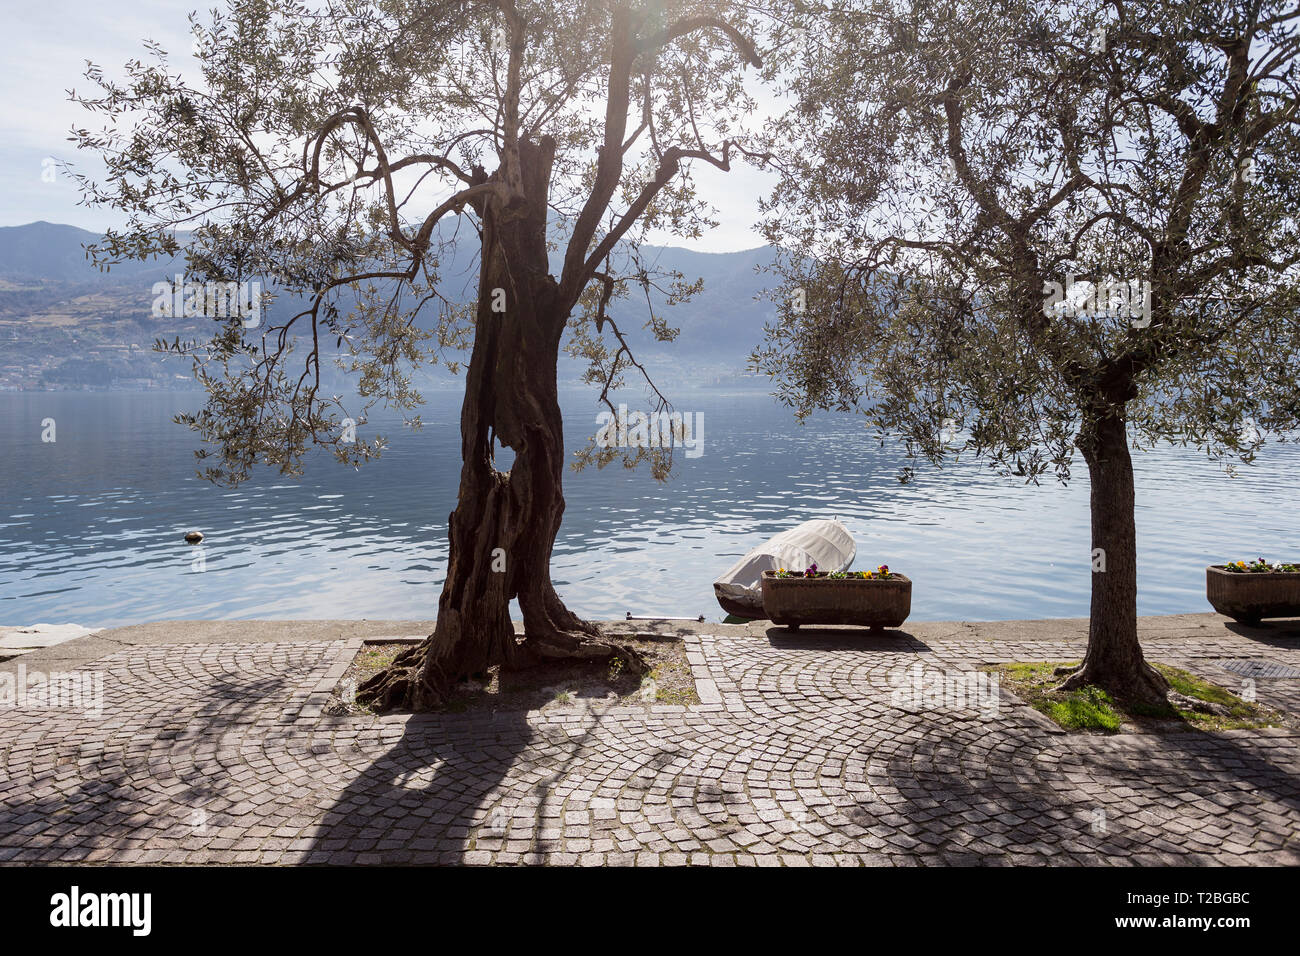 Olive trees in Monte Isola, Lake Iseo, Lombardy, Italy - Stock Image